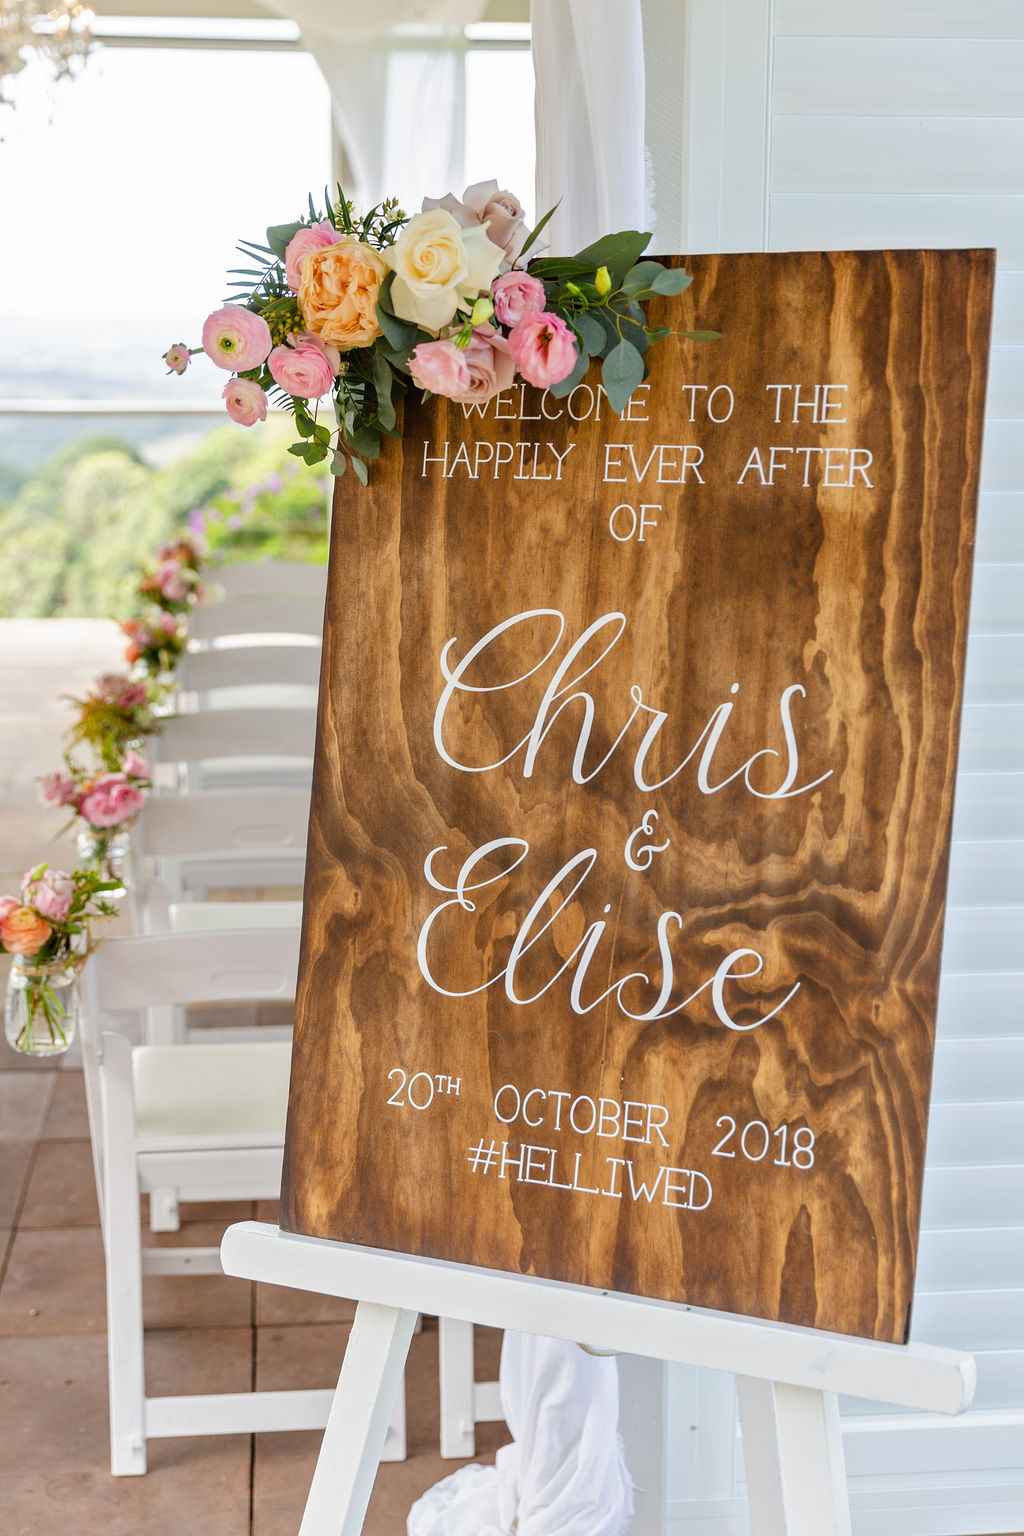 Entry sign floral in pastel tones